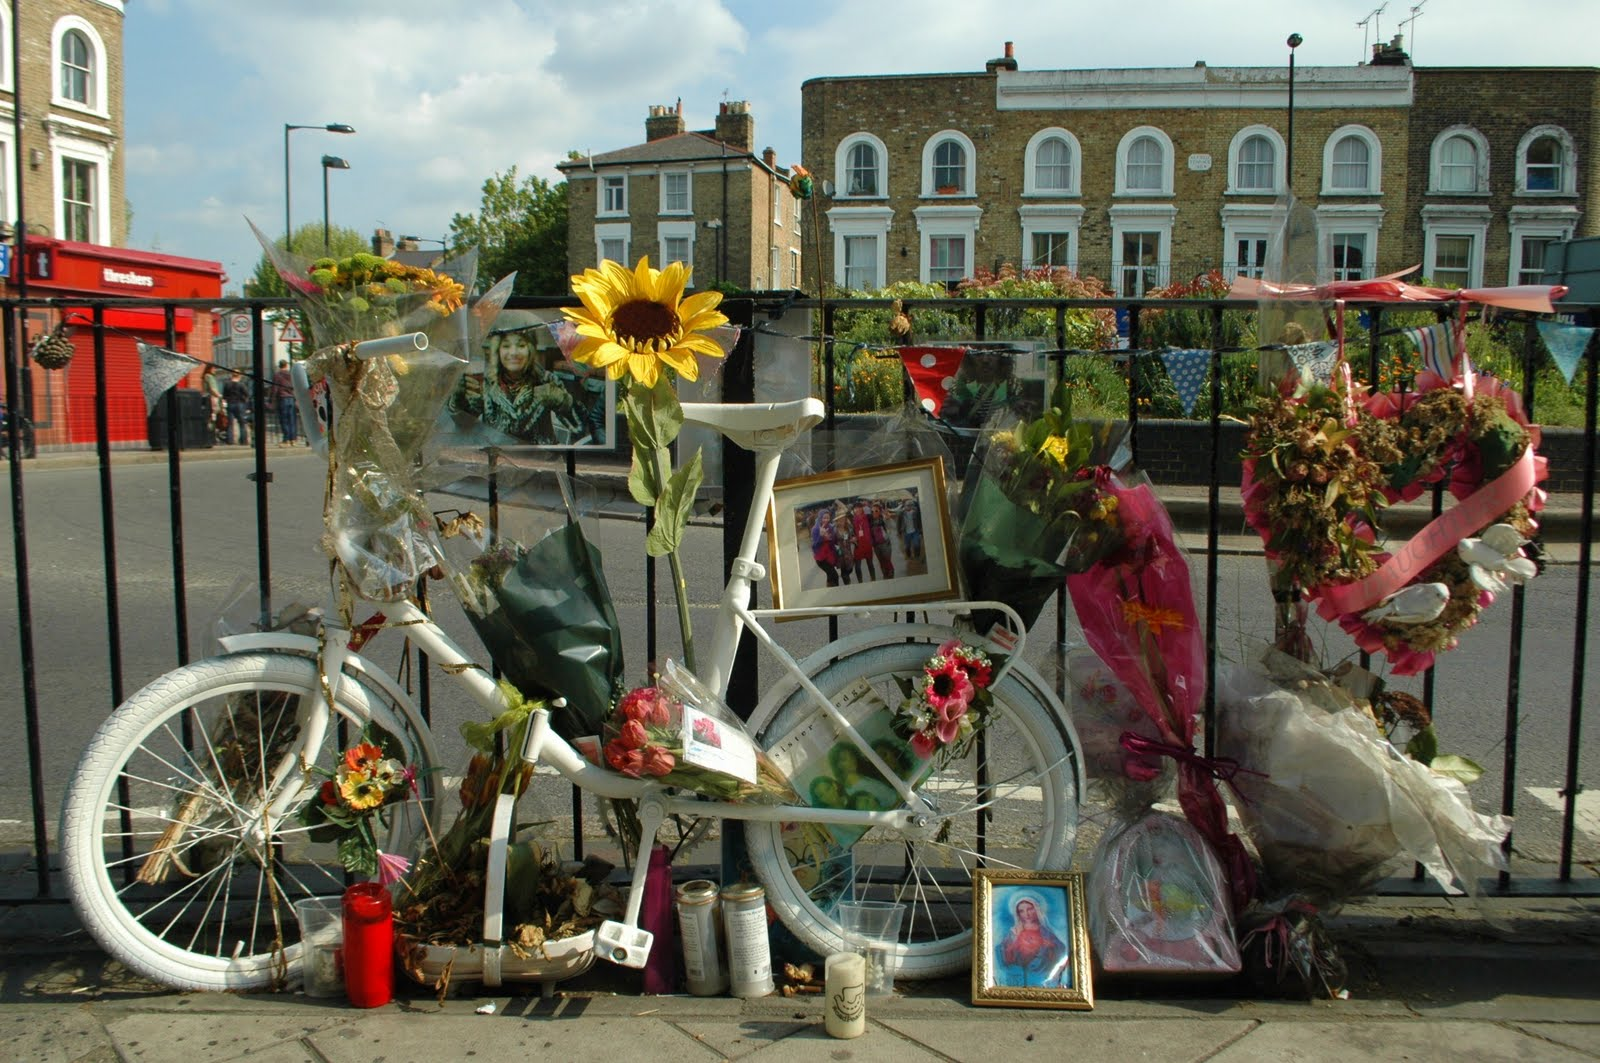 Cyclists   In remembrance | Two wheels and beyond